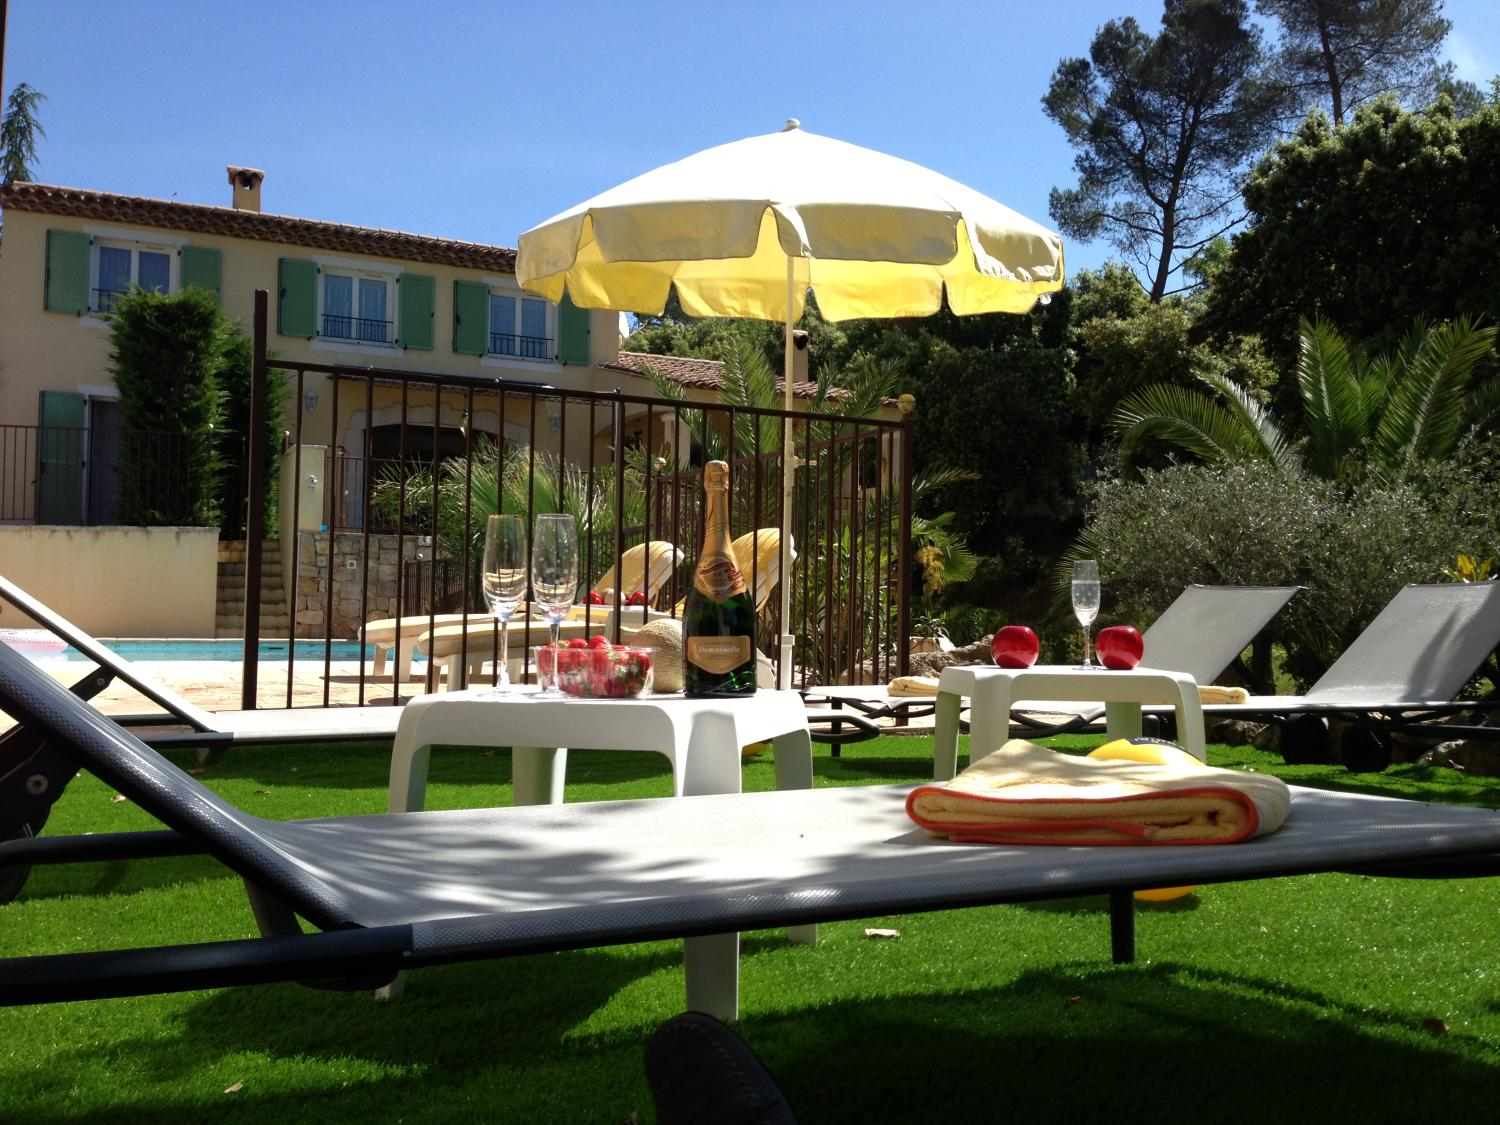 sun loungers and parasols